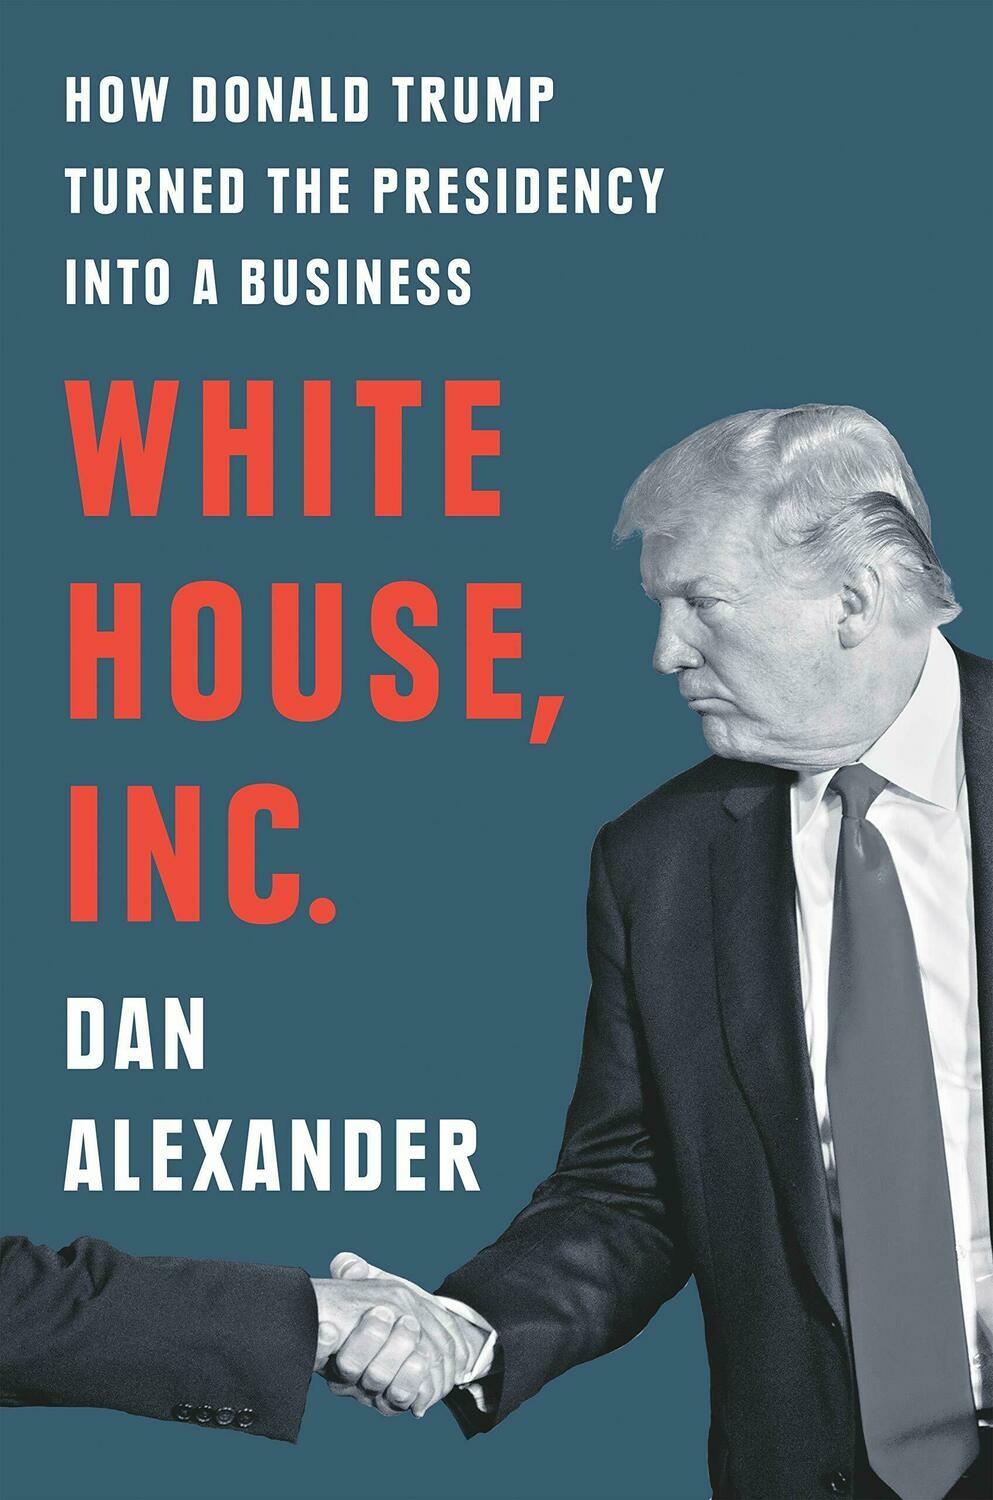 White House, Inc.: How Donald Trump Turned the Presidency into a Business